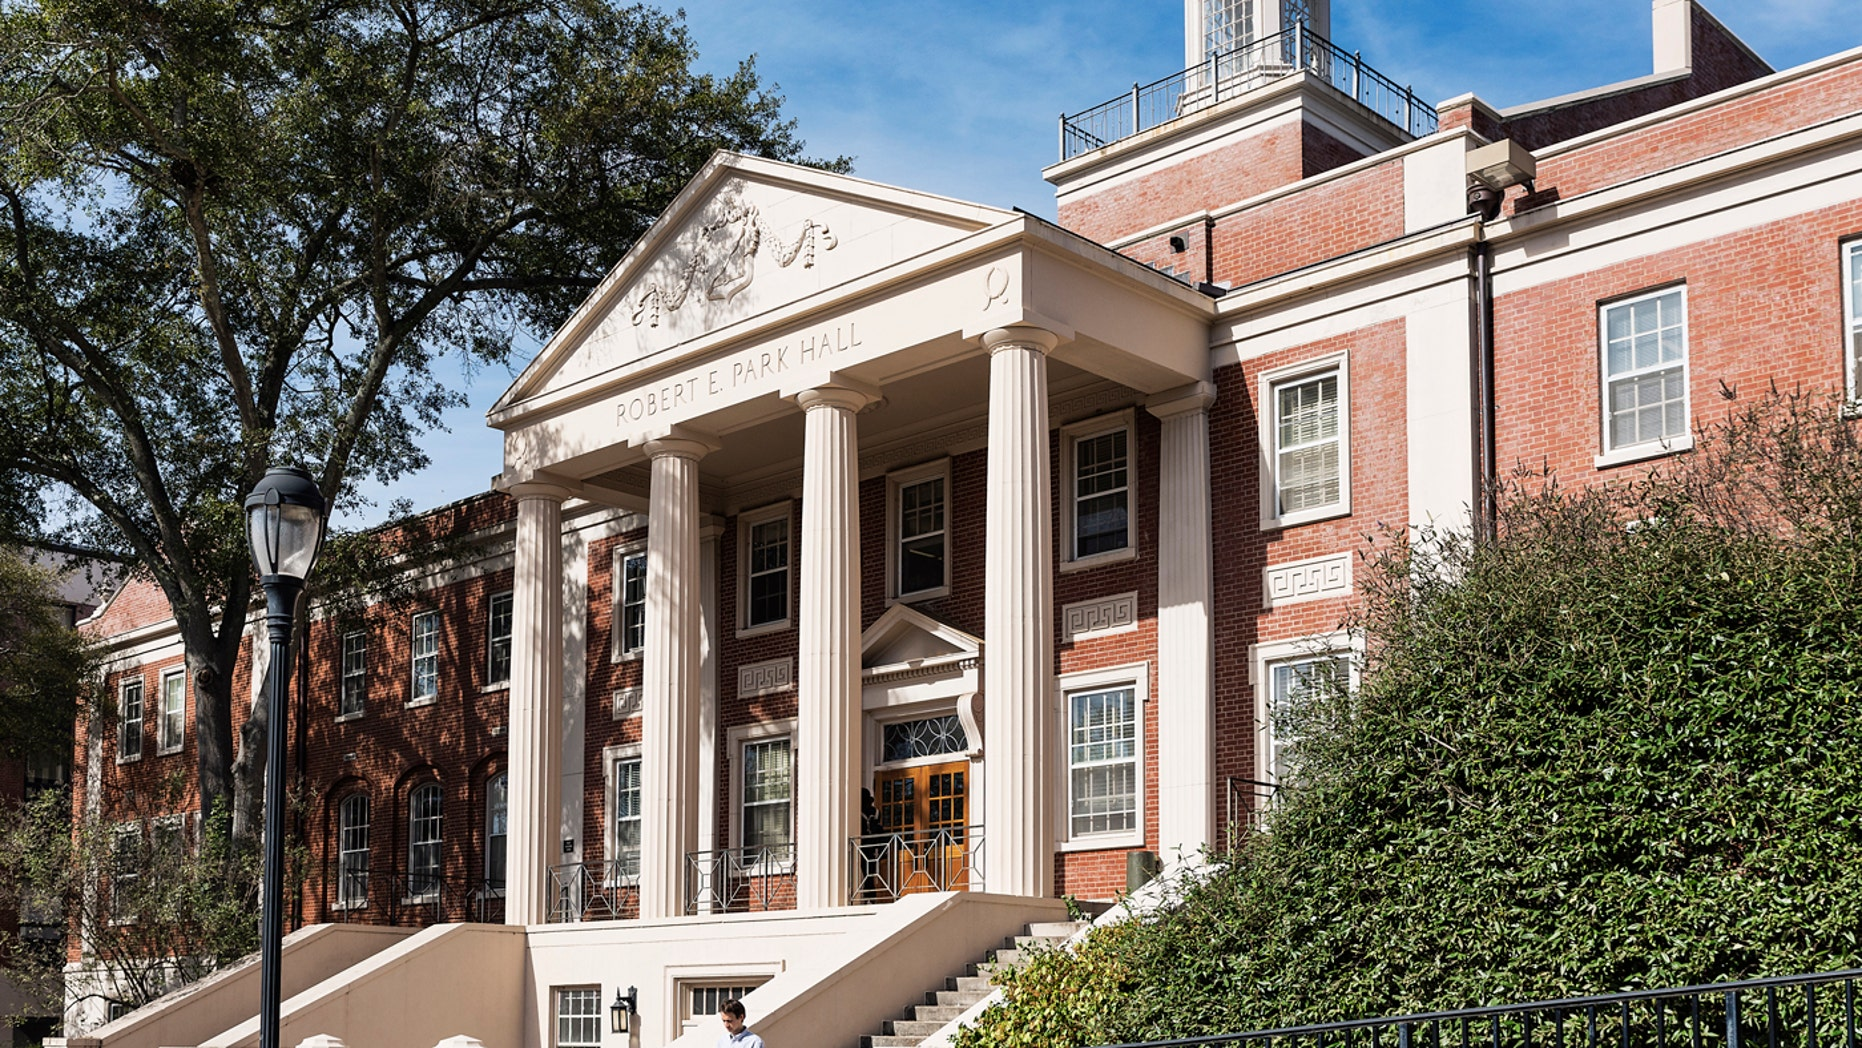 ATHENS, GEORGIA, UNITED STATES - 2015/11/13: Park Hall on the University of Georgia campus. (Photo by John Greim/LightRocket via Getty Images)